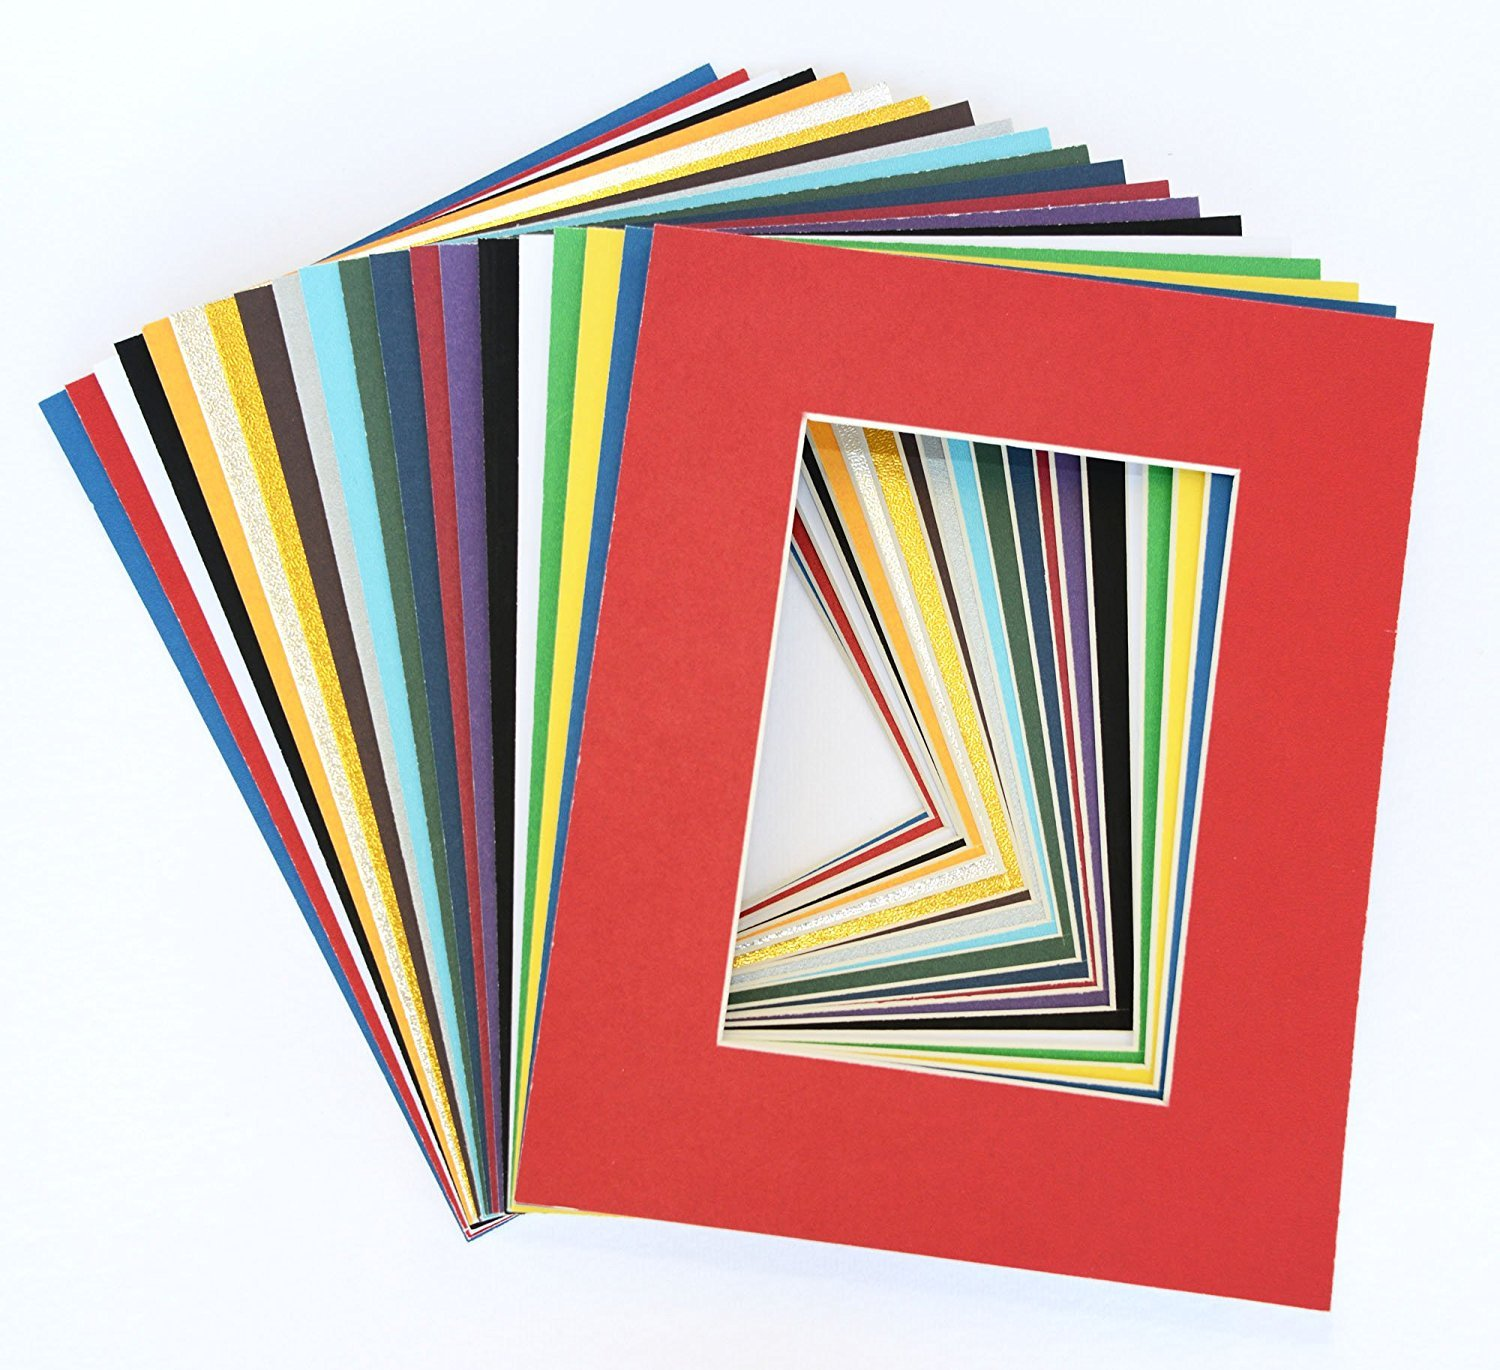 Pack of 20 MIXED COLORS 11x14 Picture Mats Matting with White Core Bevel Cut for 8x10 Pictures topseller100 mat11x14MIX20